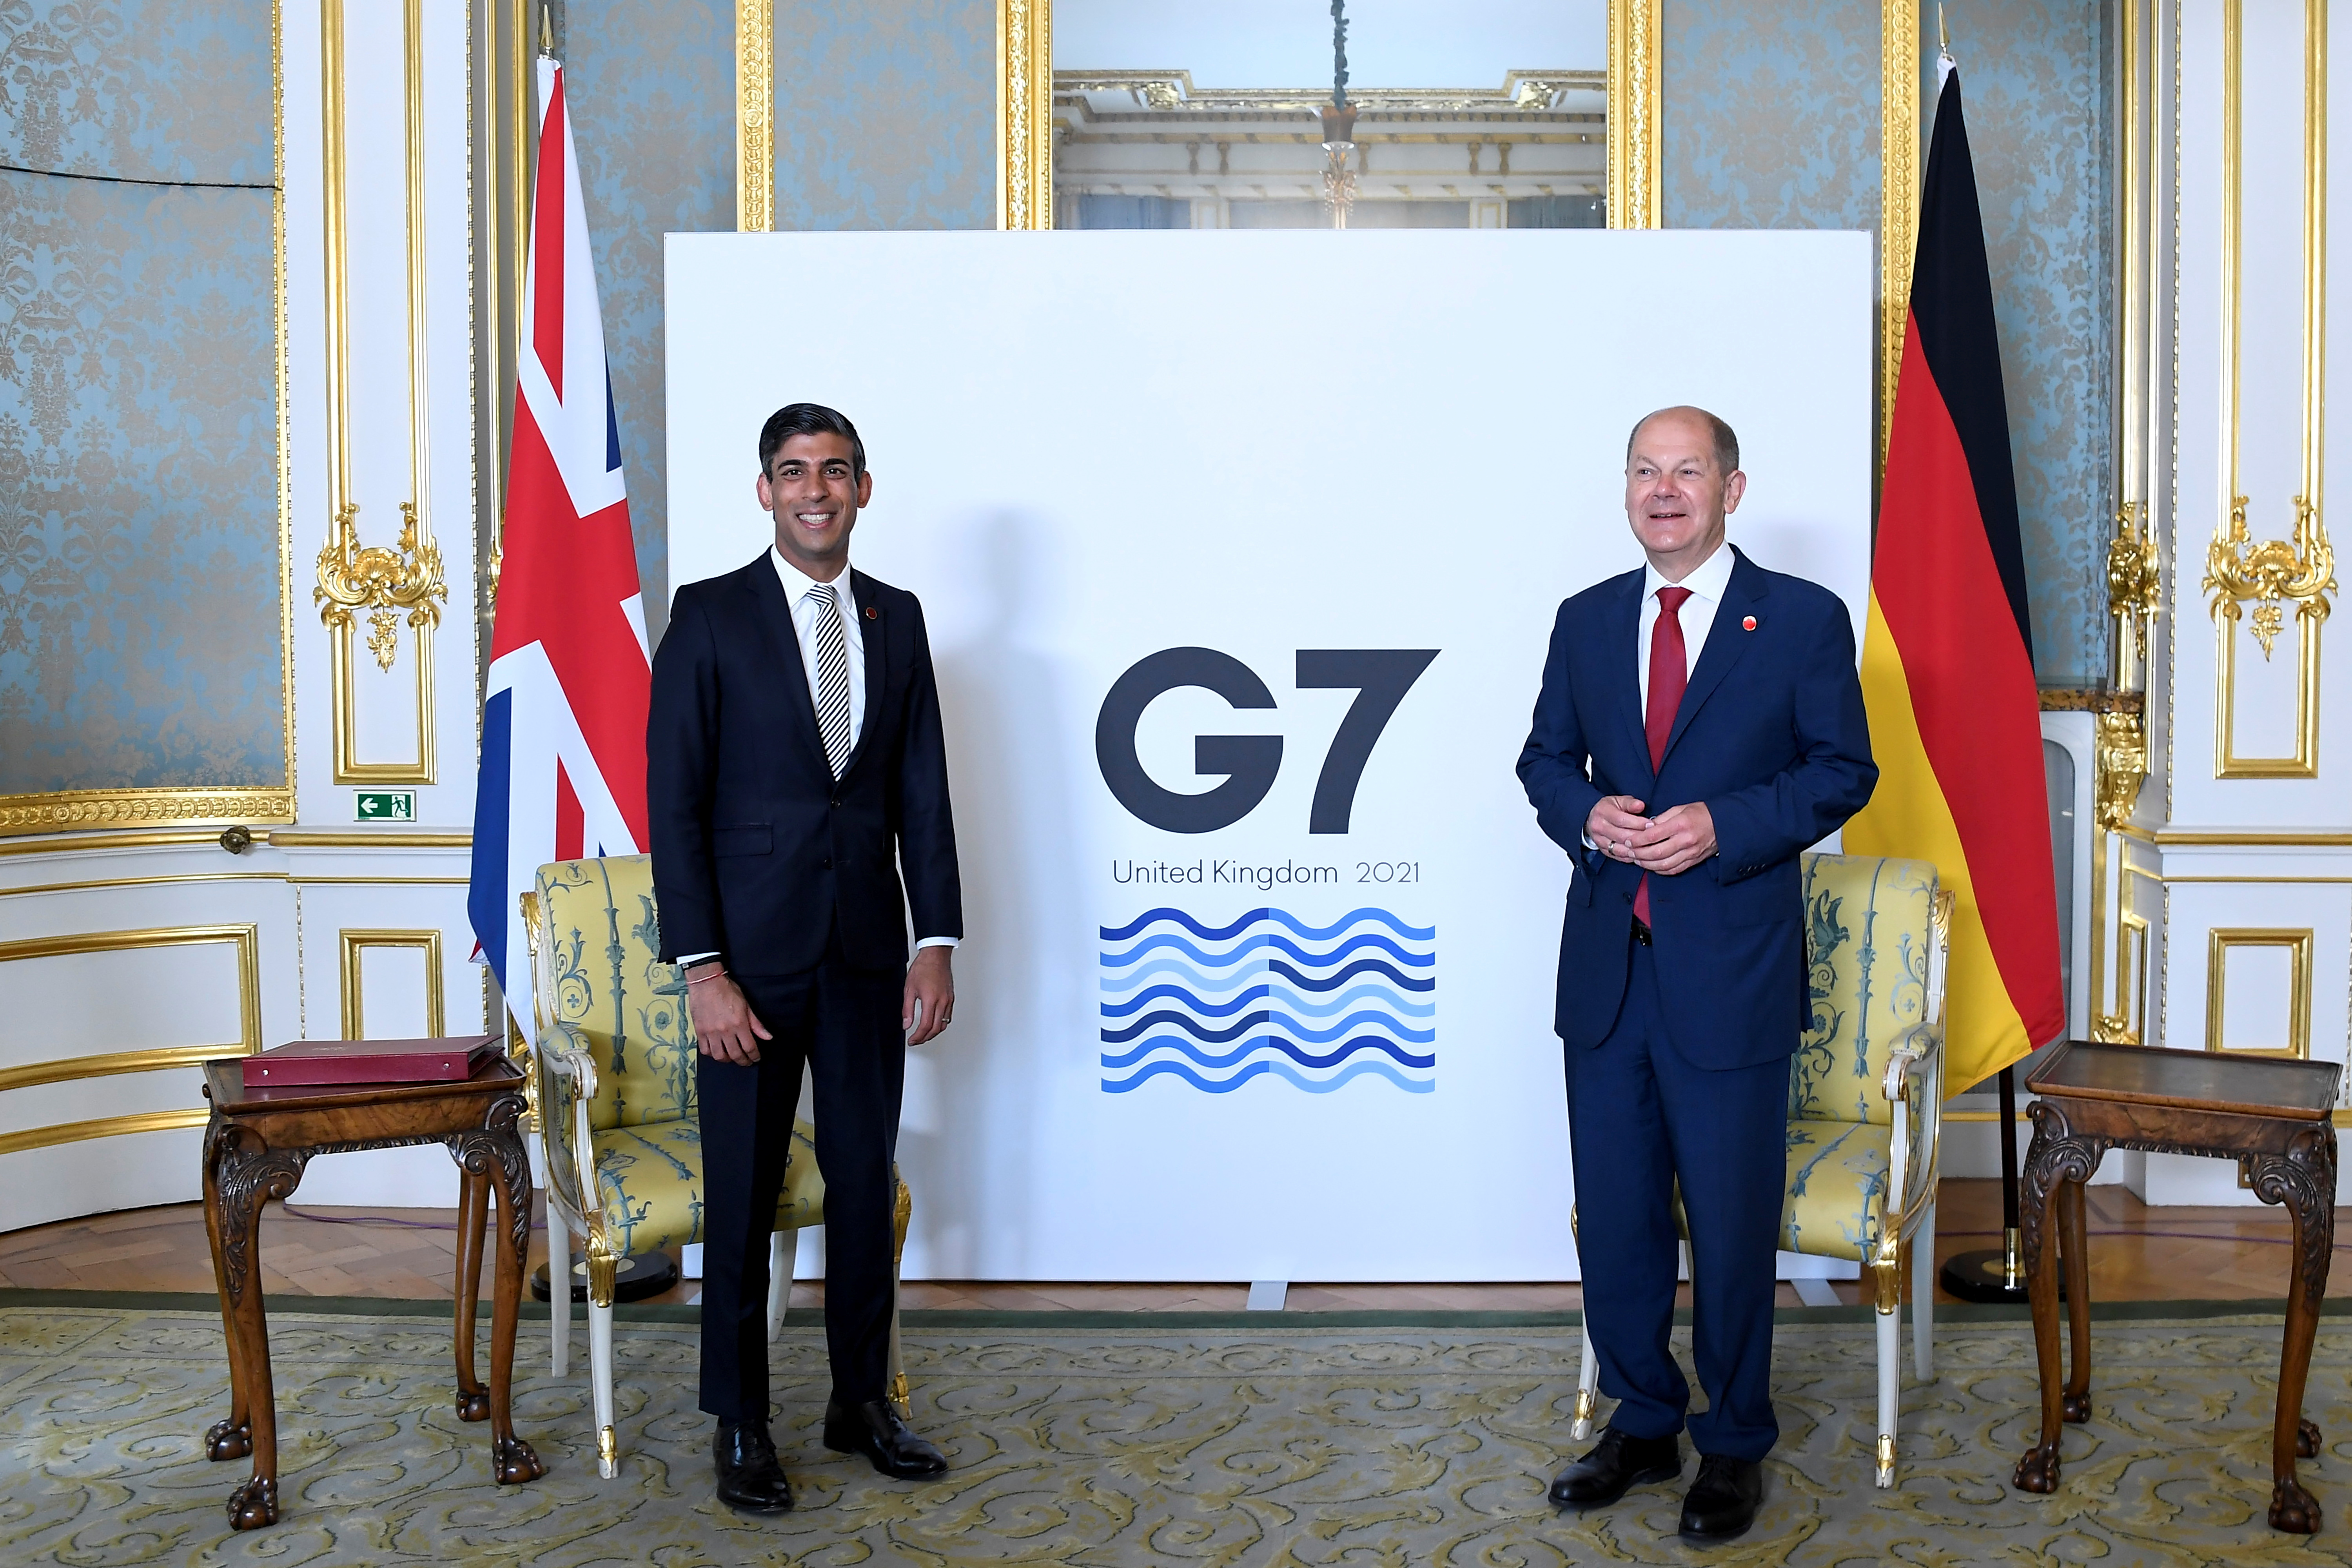 Britain's Chancellor of the Exchequer Rishi Sunak poses with Germany's Finance Minister Olaf Sholz as finance ministers from across the G7 nations meet at Lancaster House in London, Britain June 5, 2021 ahead of the G7 leaders' summit. Alberto Pezzali/Pool via REUTERS